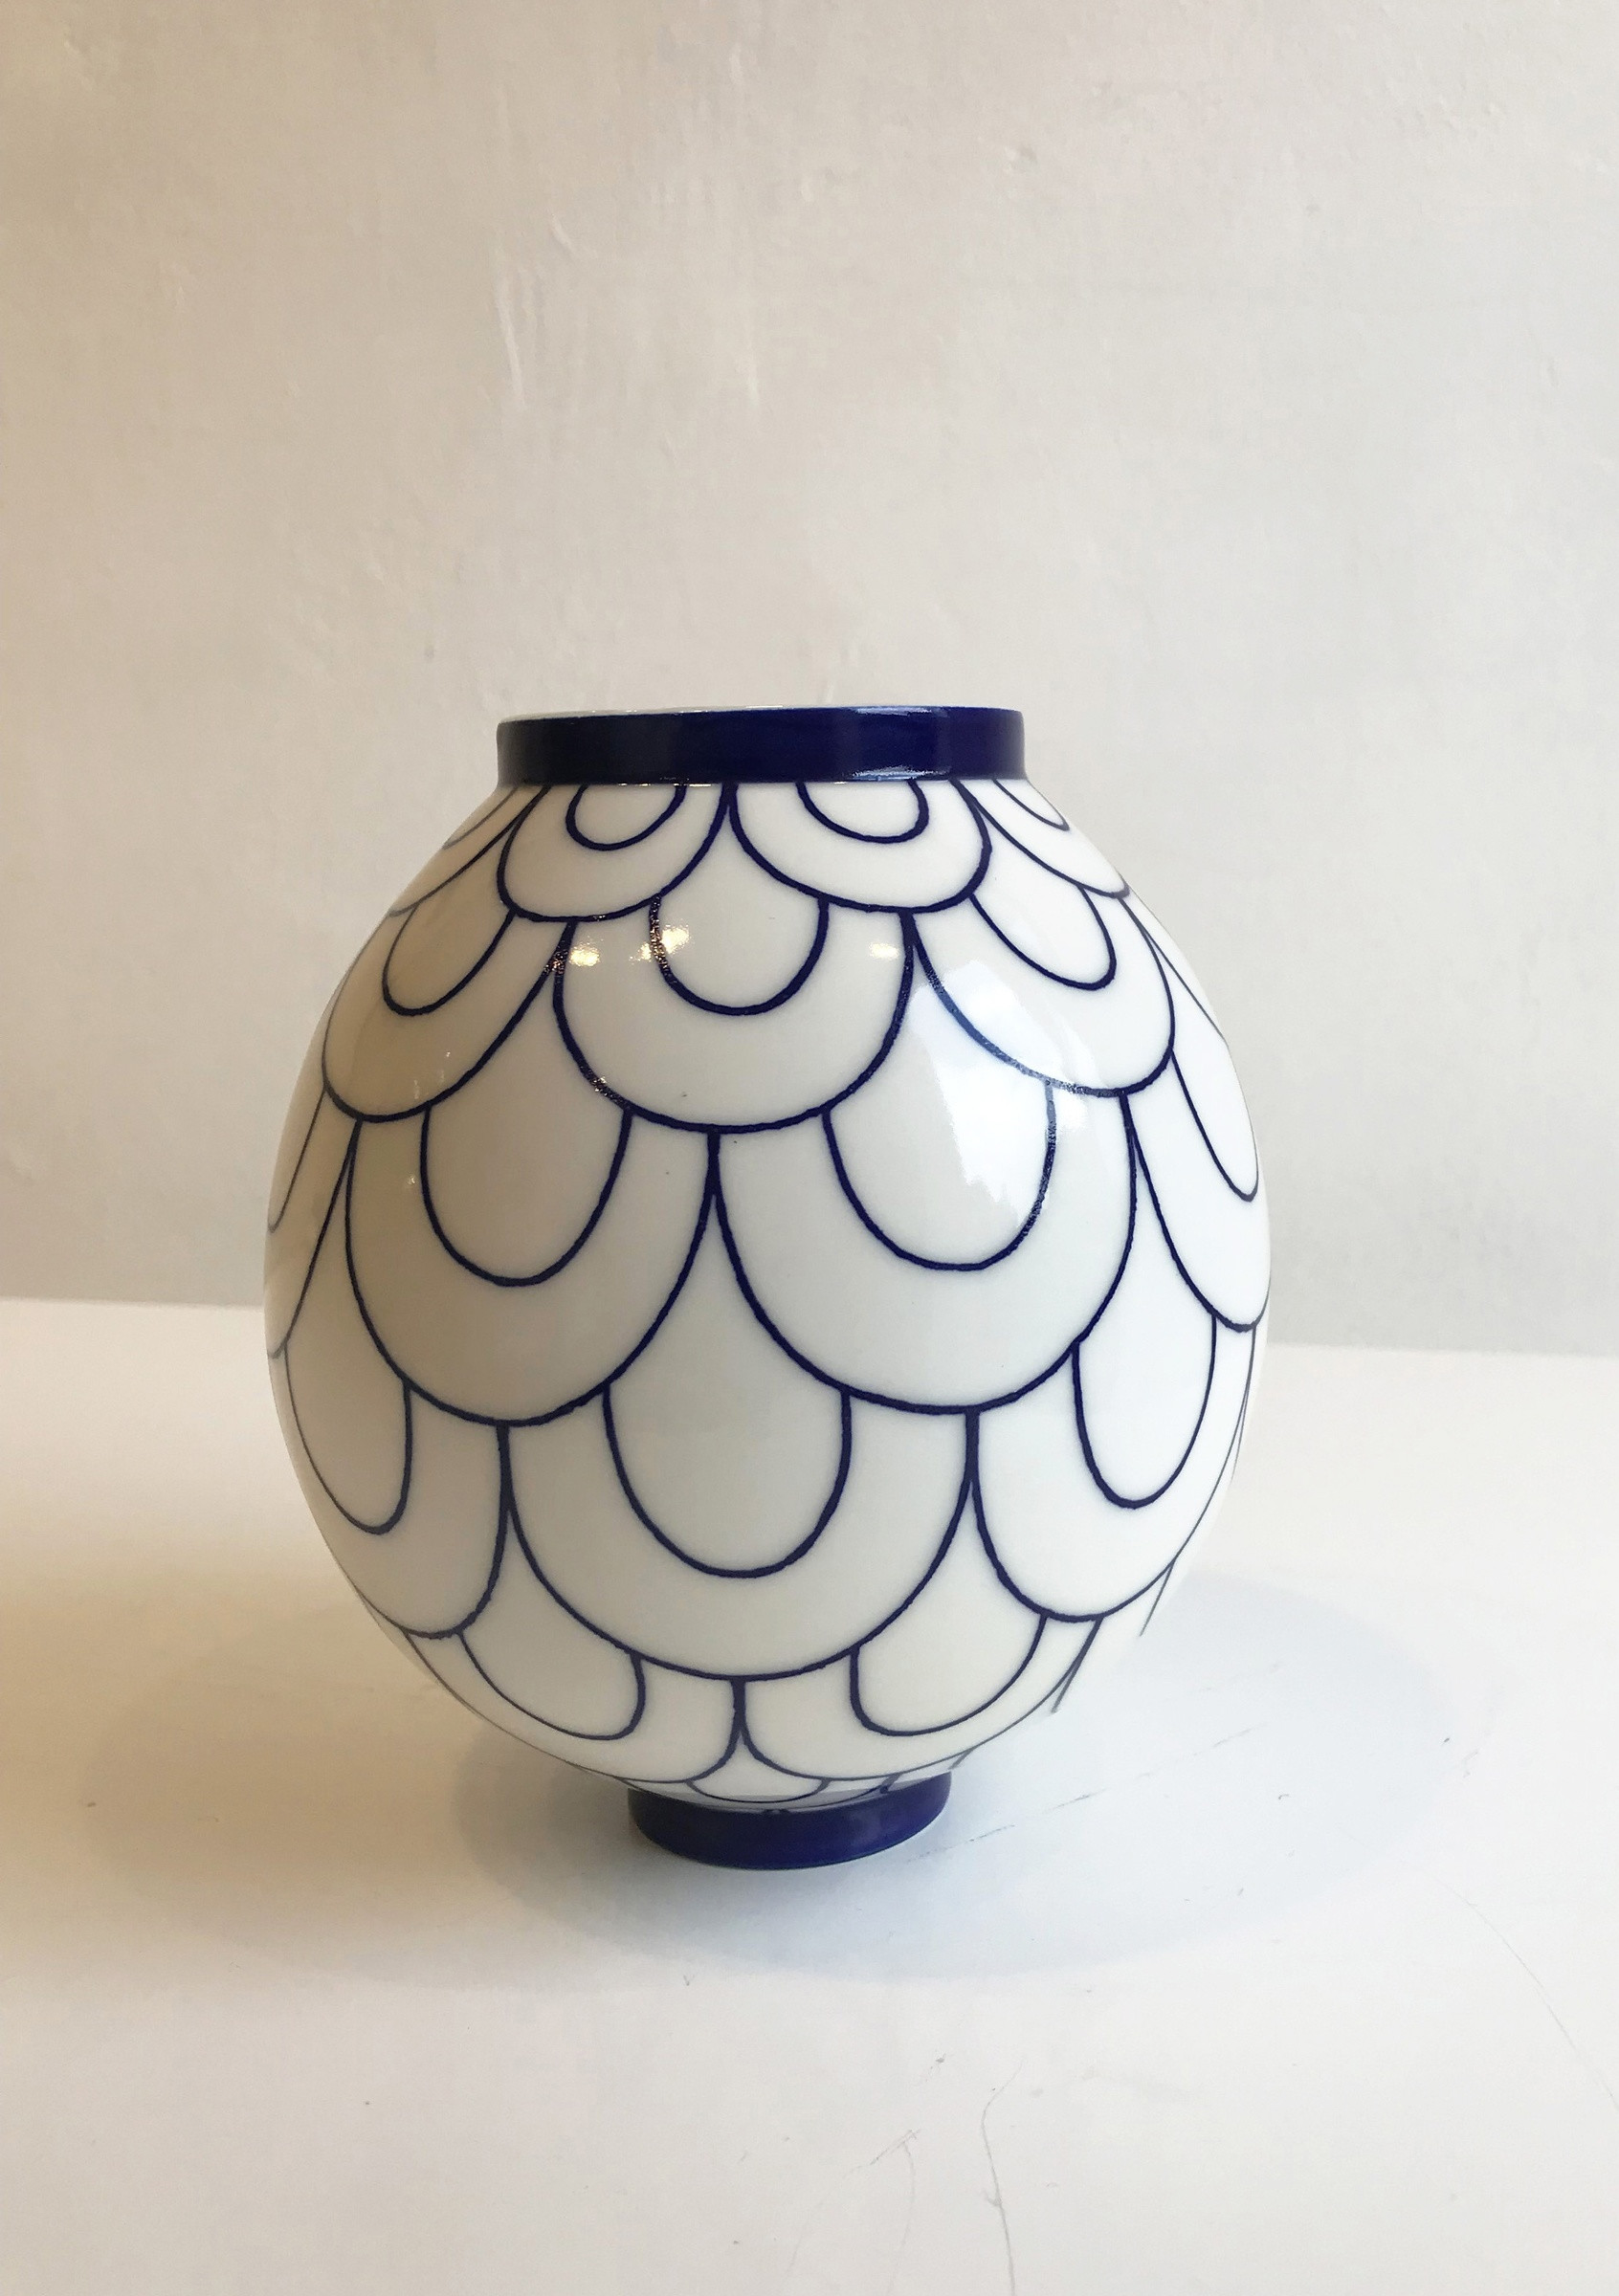 Blue and White Vases and Urns Of Rhian Malin Double Scallop Moon Jar Large Sarah Wiseman Gallery with Regard to Double Scallop Moon Jar Large